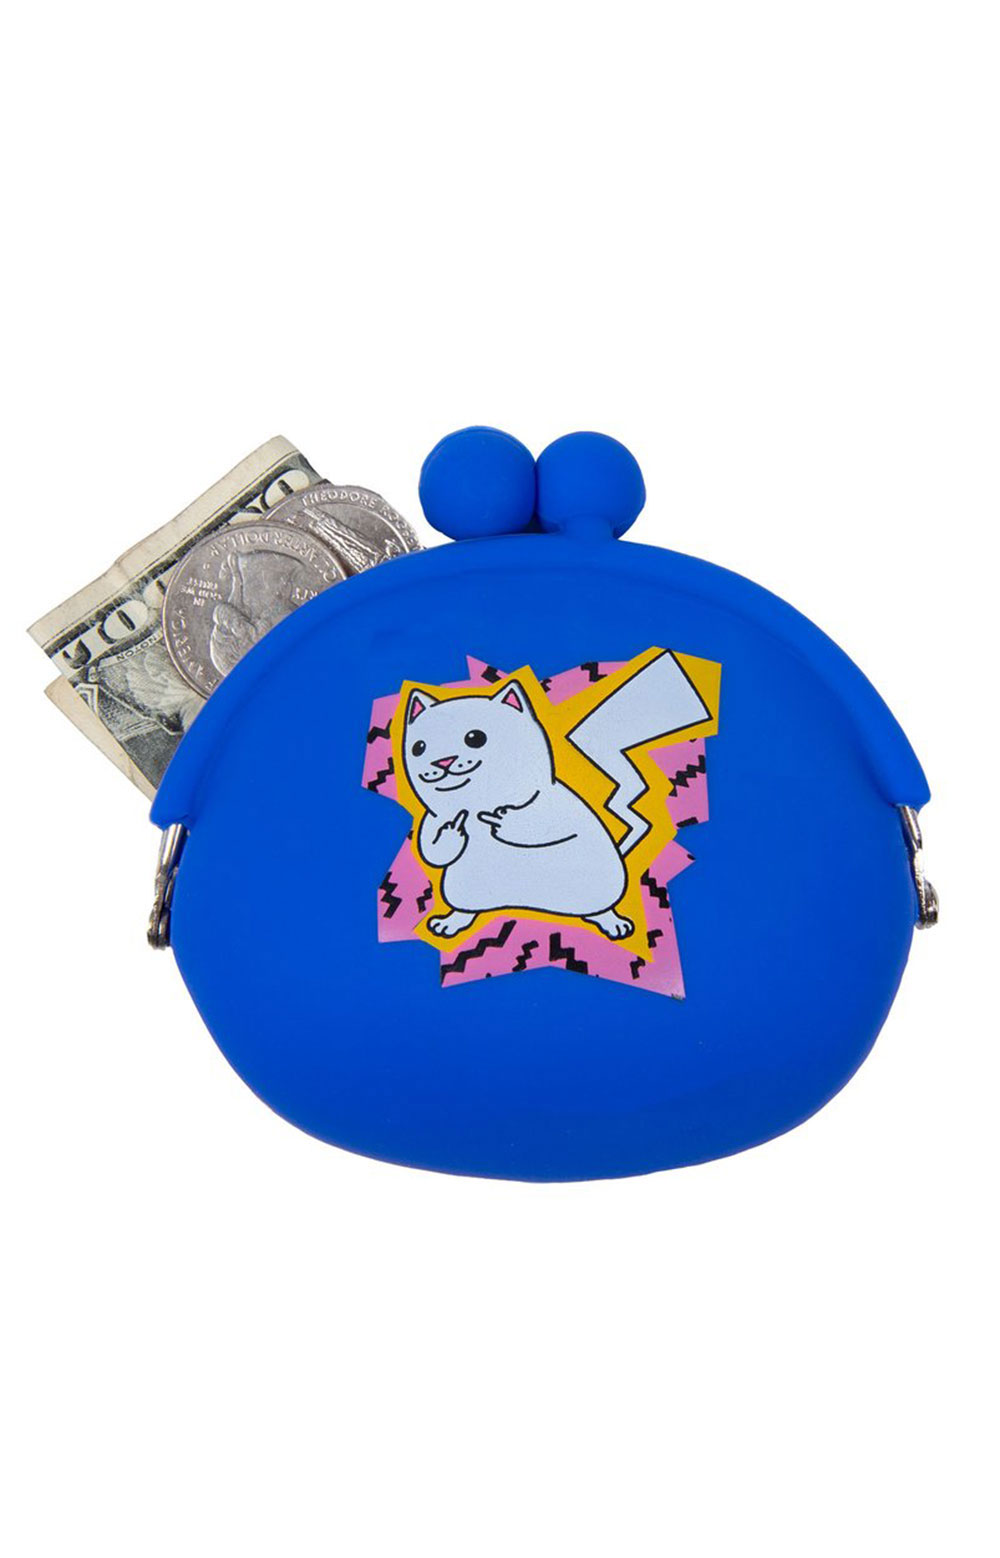 Catch Em All Rubber Coin Pouch  3